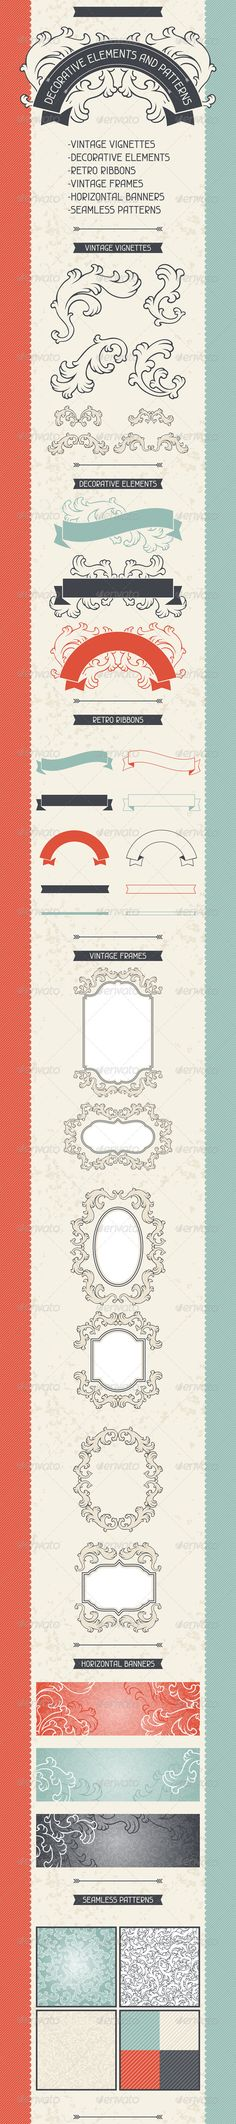 Decorative Elements and Patterns.  #GraphicRiver         Decorative elements and patterns.   -vintage vignettes (, -decorative elements (3),  -retro ribbons (10), -vintage frames (6), -horizontal banners (3), -seamless patterns (7).   Zip file contains: